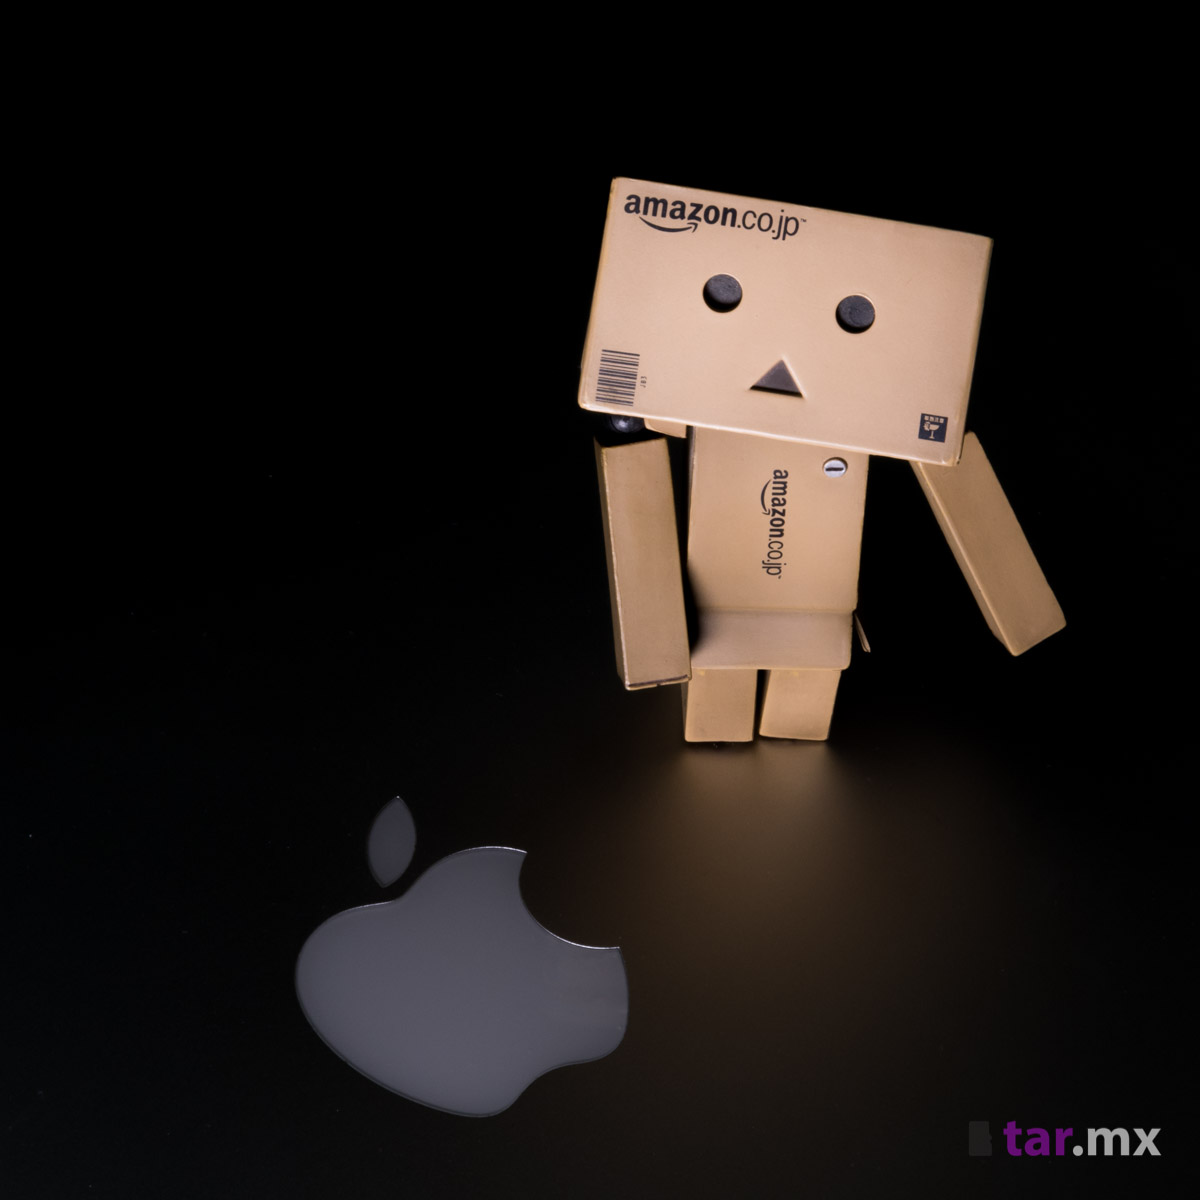 Robot Amazon, Apple, consumismo